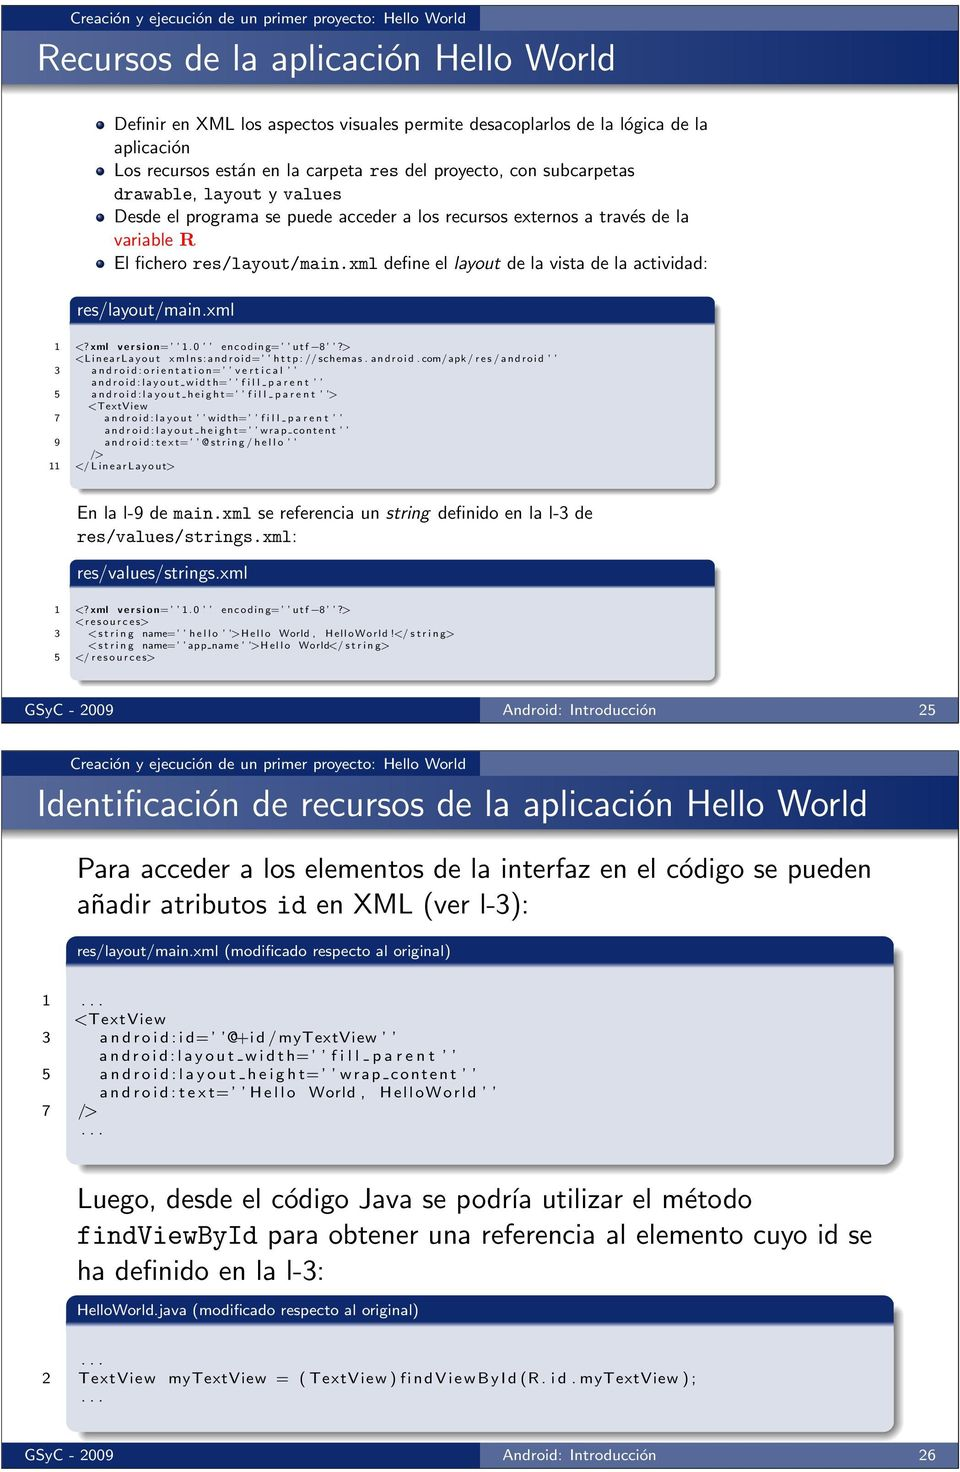 xml define el layout de la vista de la actividad: res/layout/main.xml 1 <?xml v e r s i o n= 1.0 encoding= utf 8?> <LinearLayout xmlns:android= http: // schemas. android.